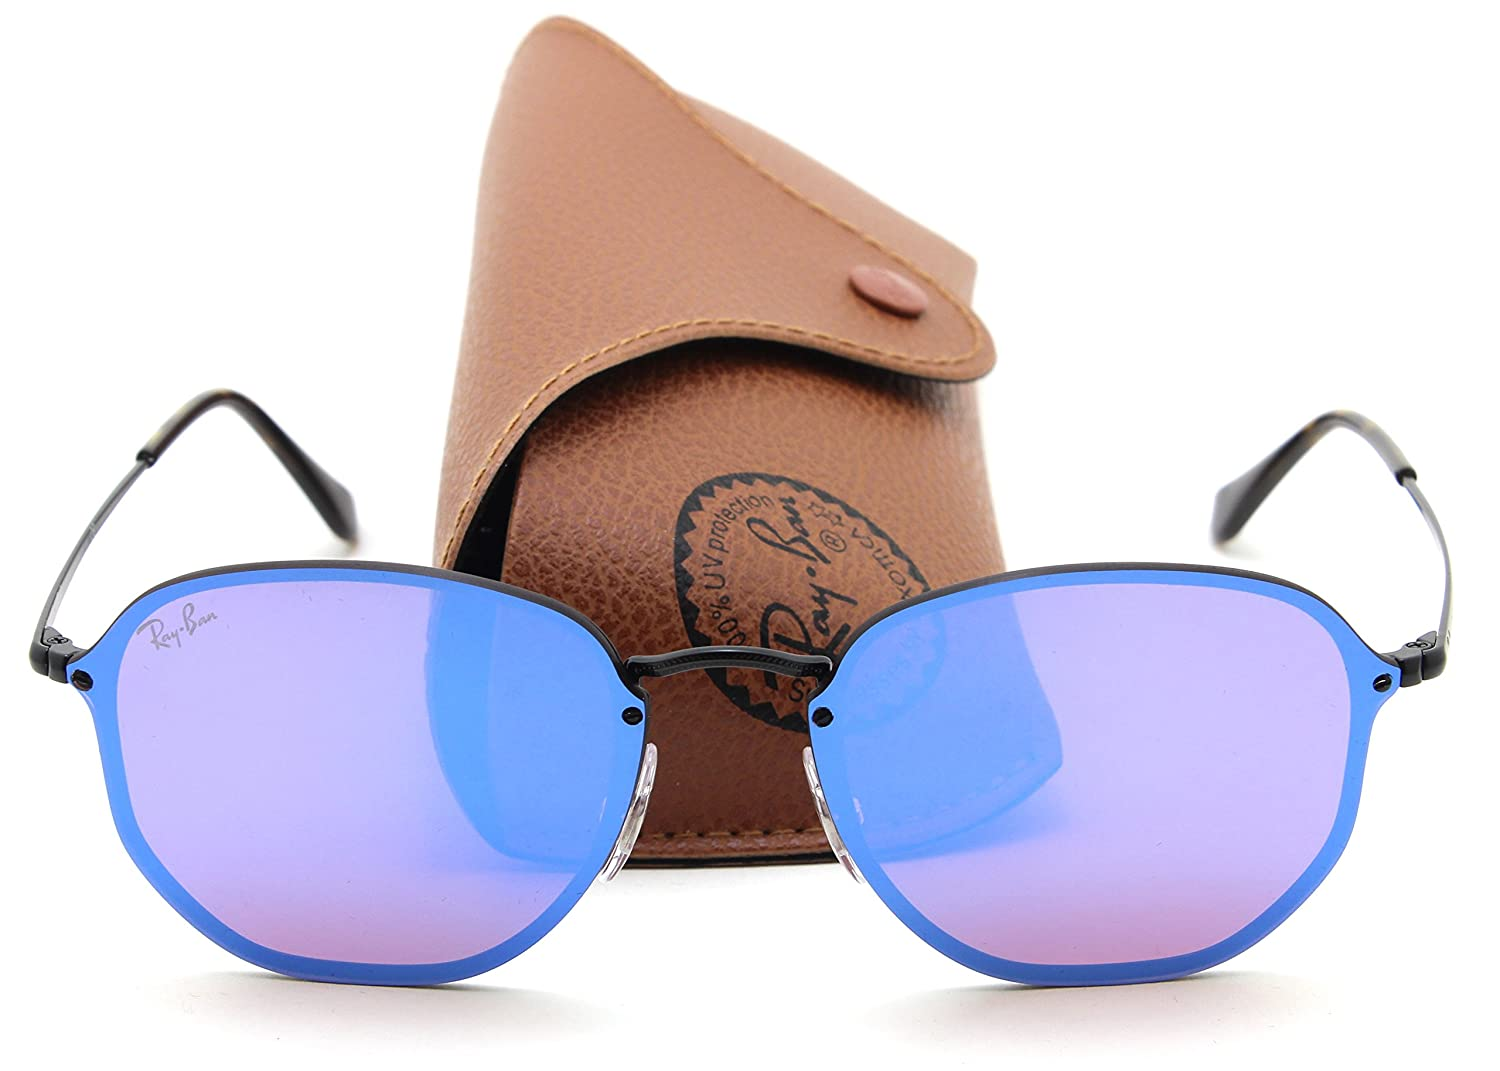 9c0baa7936 Ray-Ban RB3579N BLAZE HEXAGONAL Mirror Sunglasses 153 7V